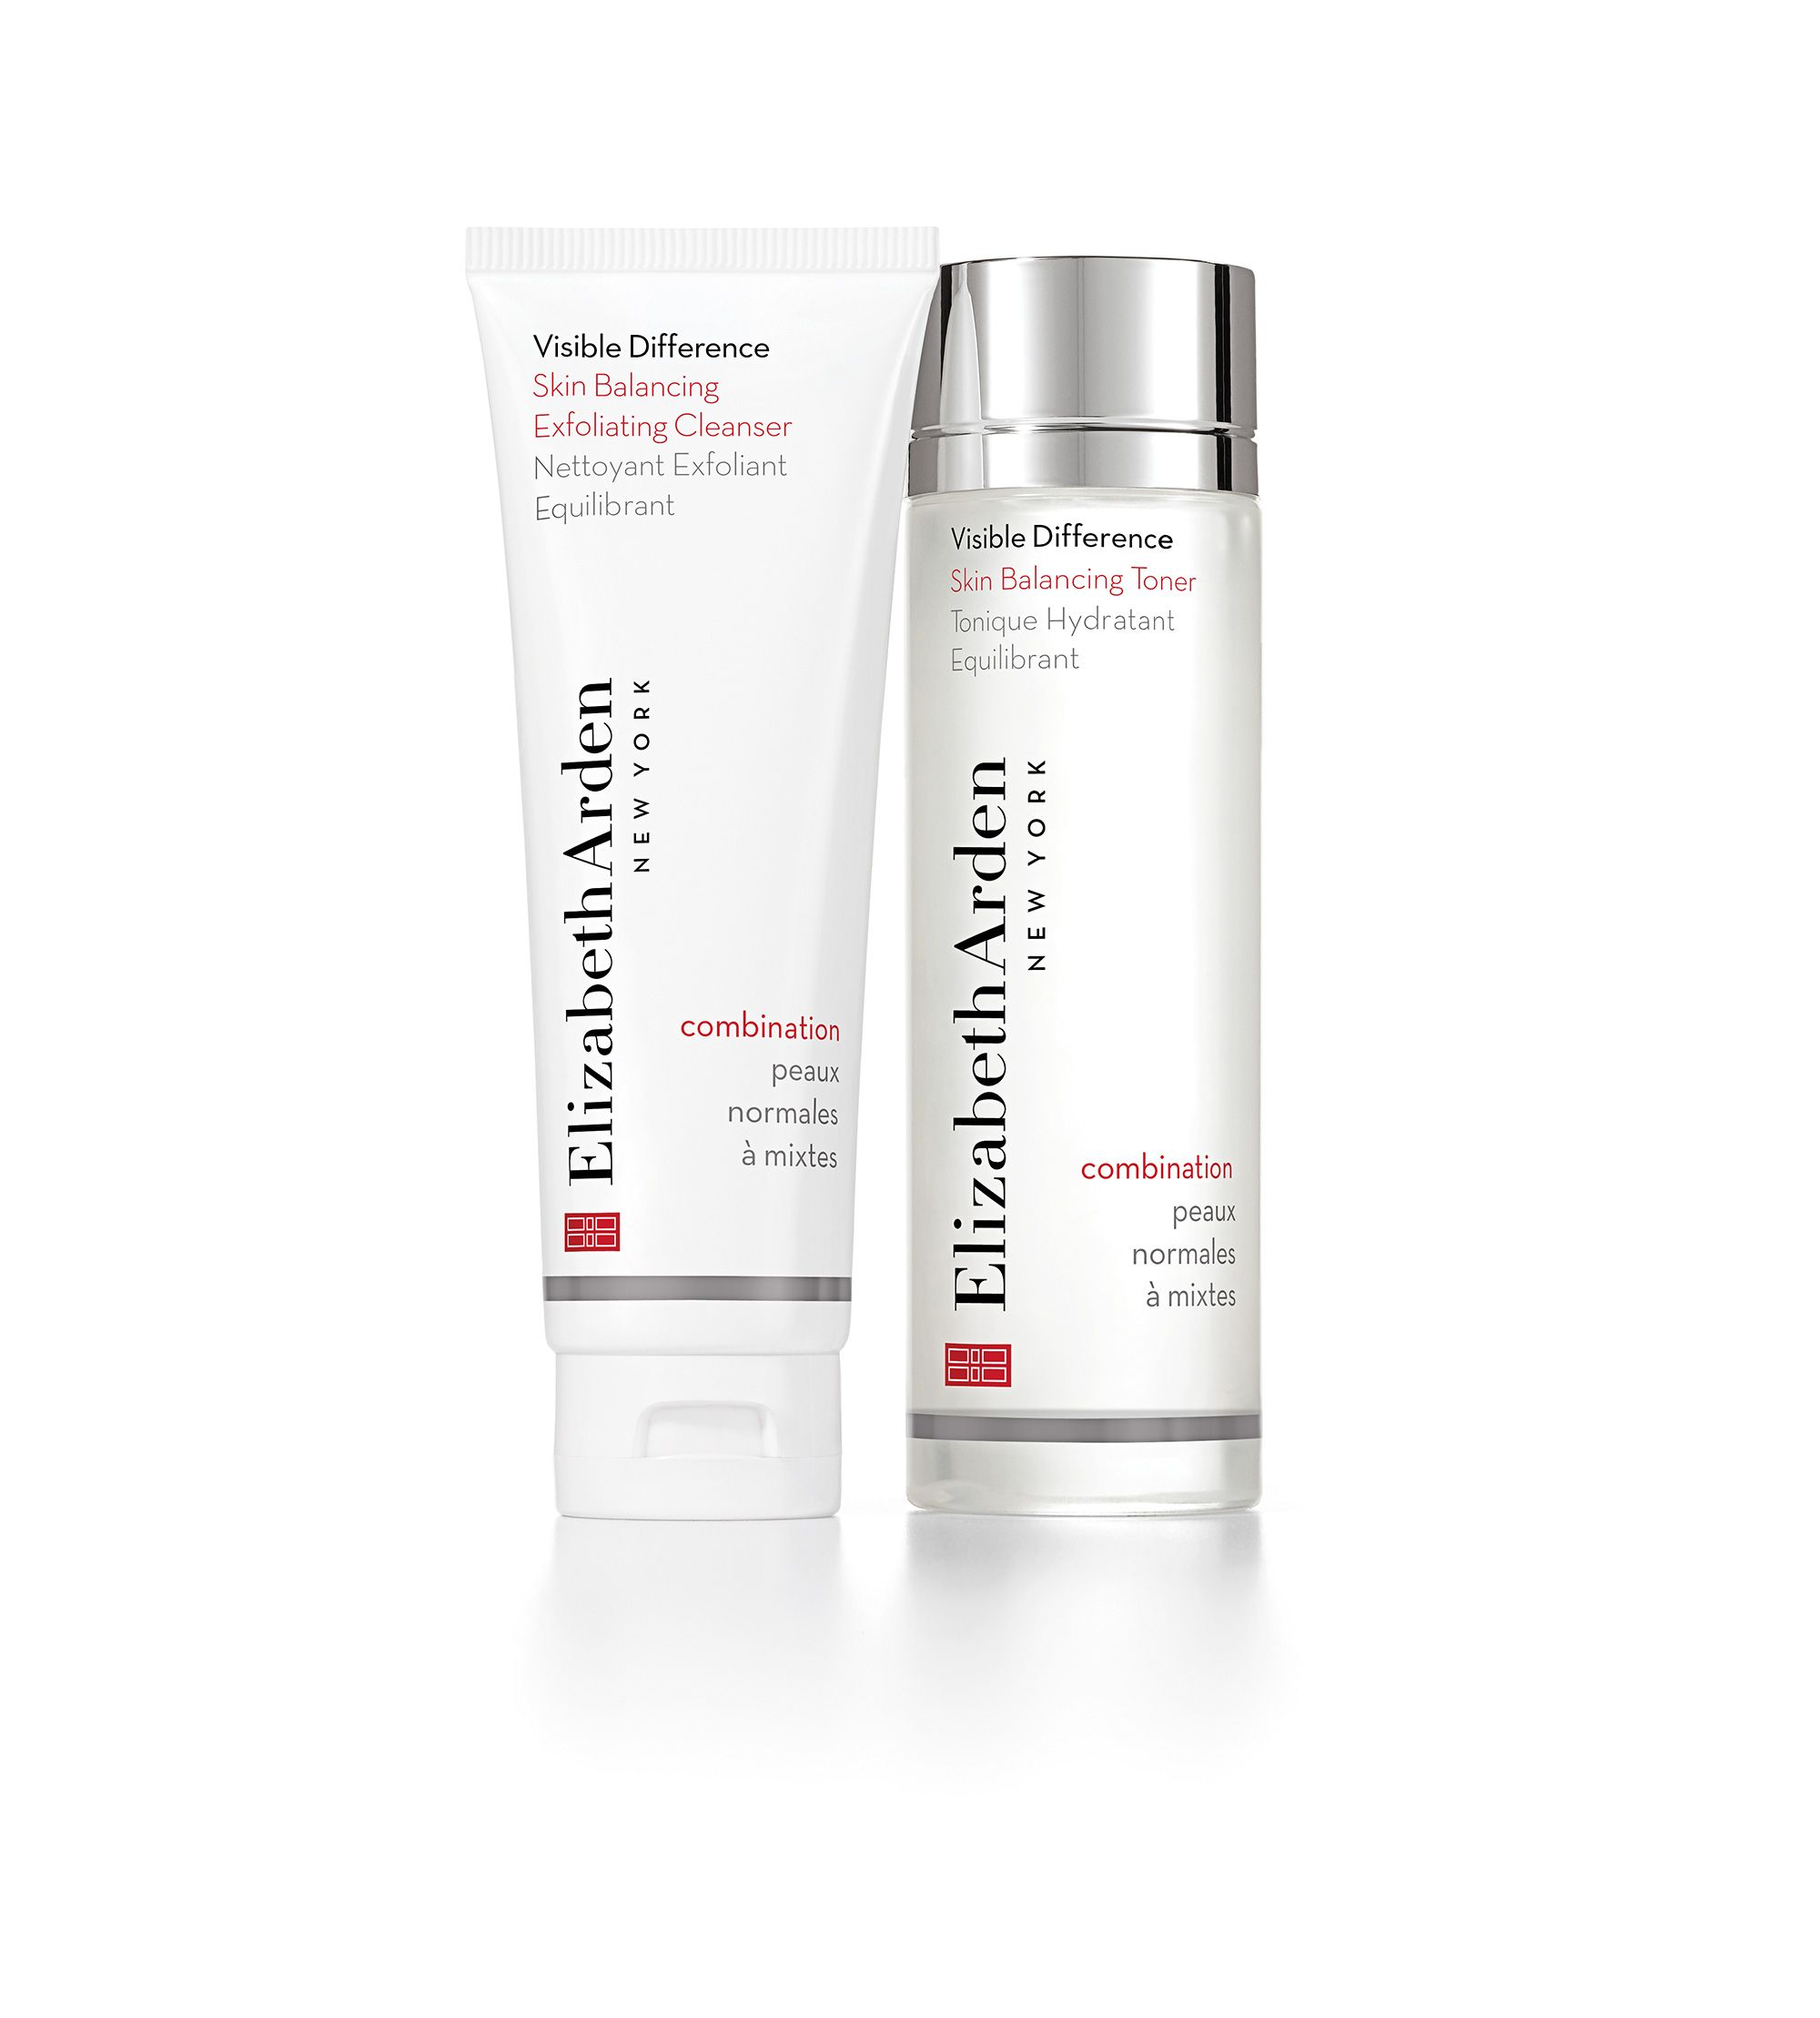 Elizabeth Arden Visible Difference Cleanser & Toner Duo Skin